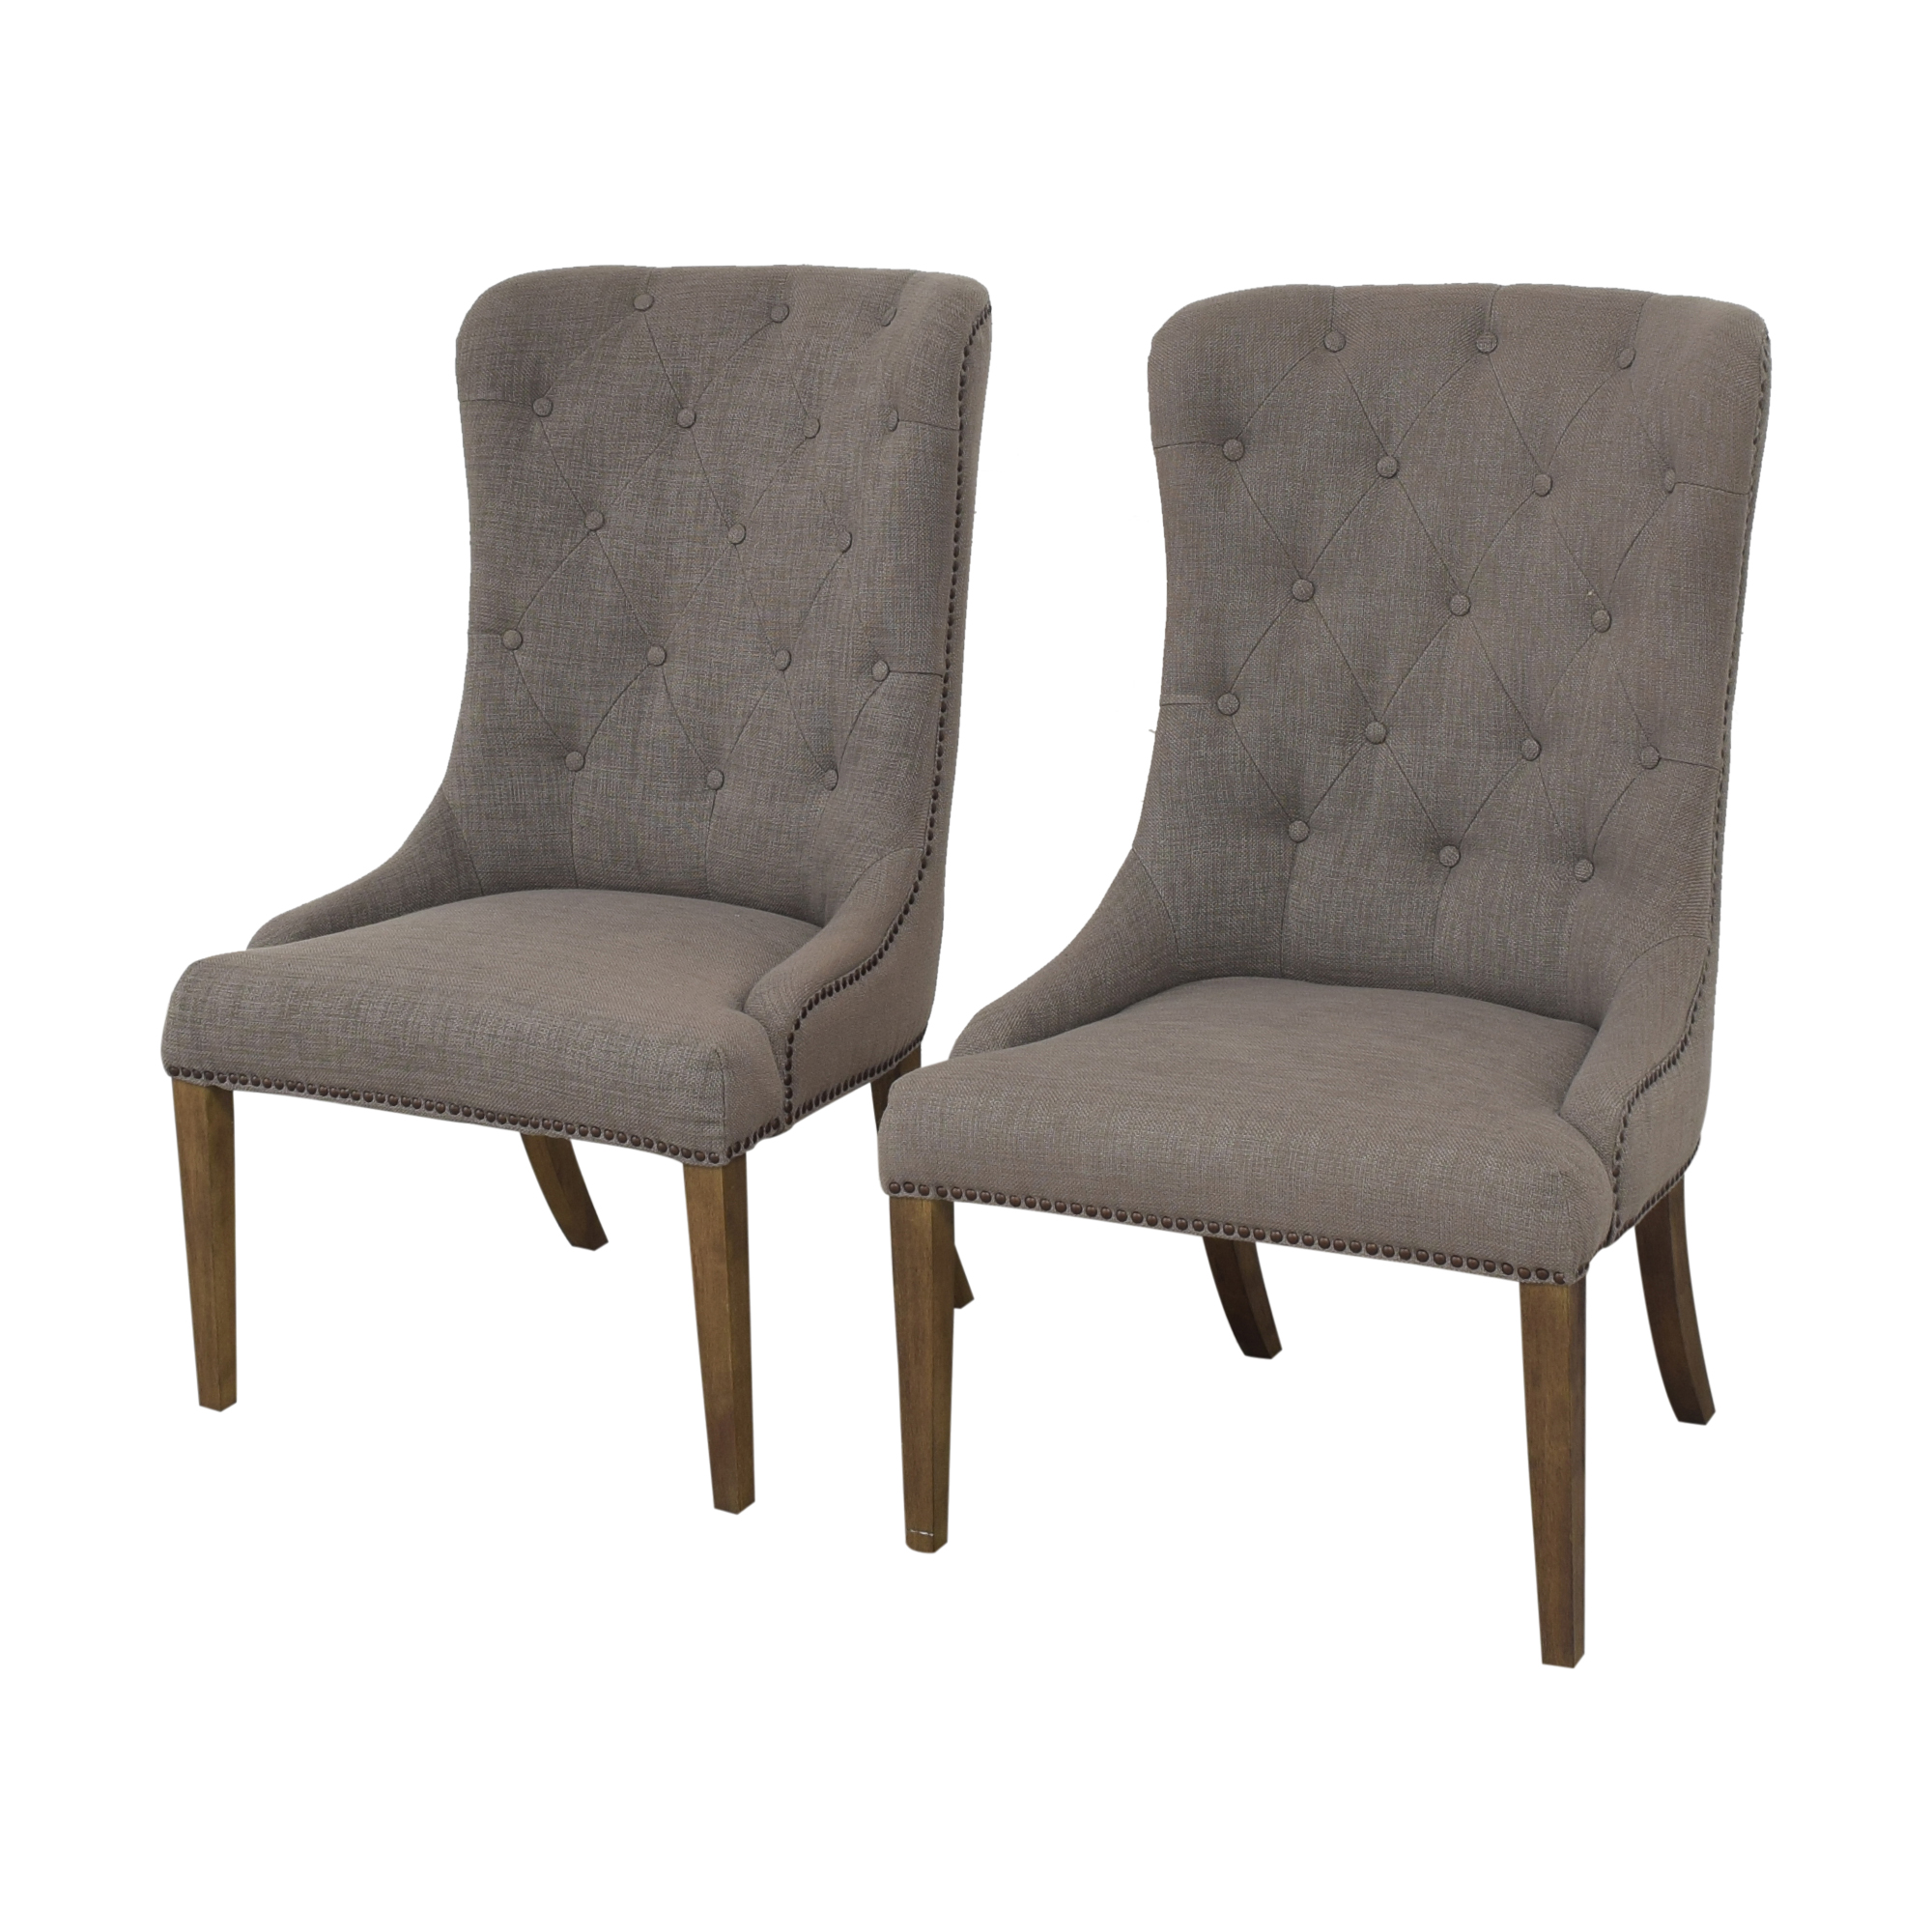 buy Four Hands Four Hands Elouise Dining Chairs online